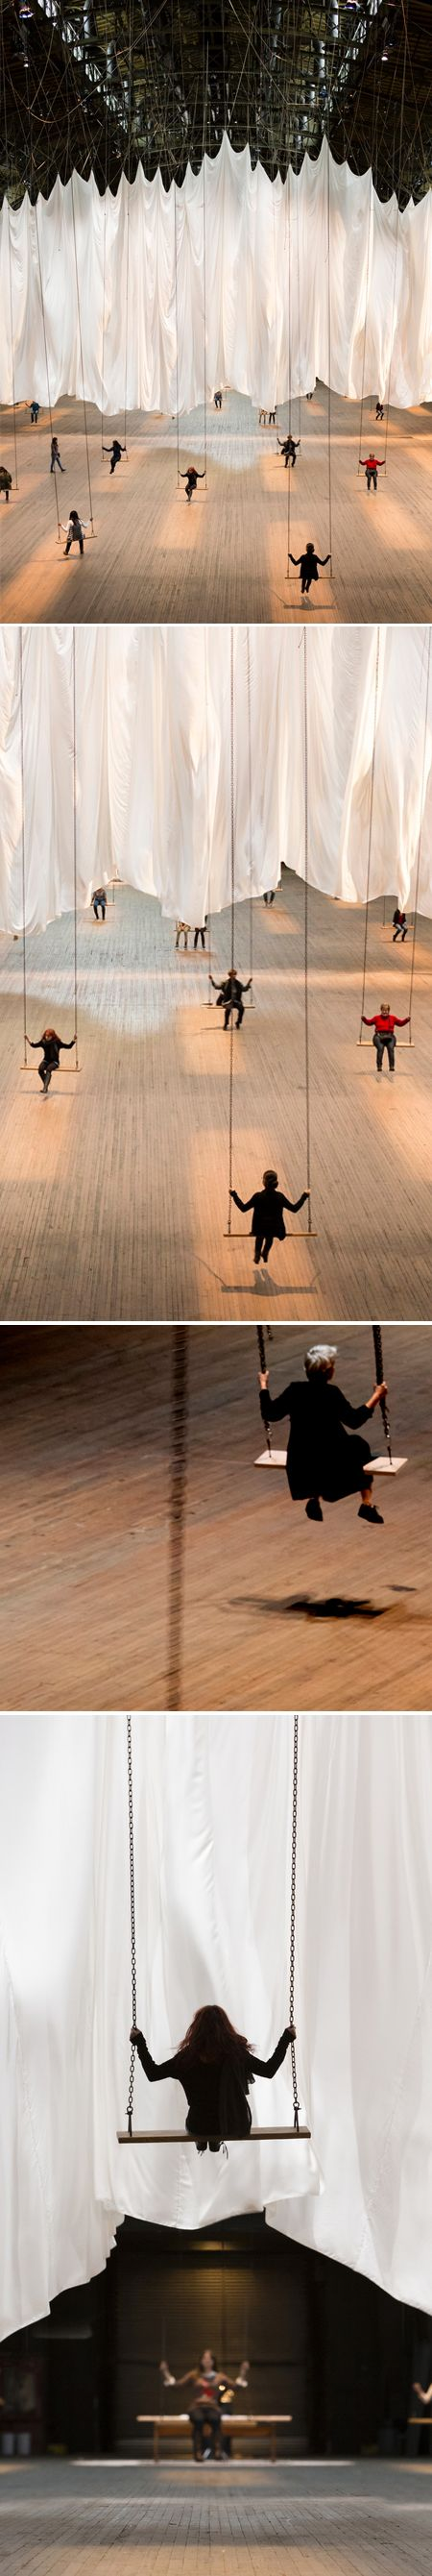 """Now until January 6, 2013 at Wade Thompson Drill Hall at the Park Avenue Armory.  Artist Ann Hamilton's installation """"the event of a thread"""".  You get to swing!"""